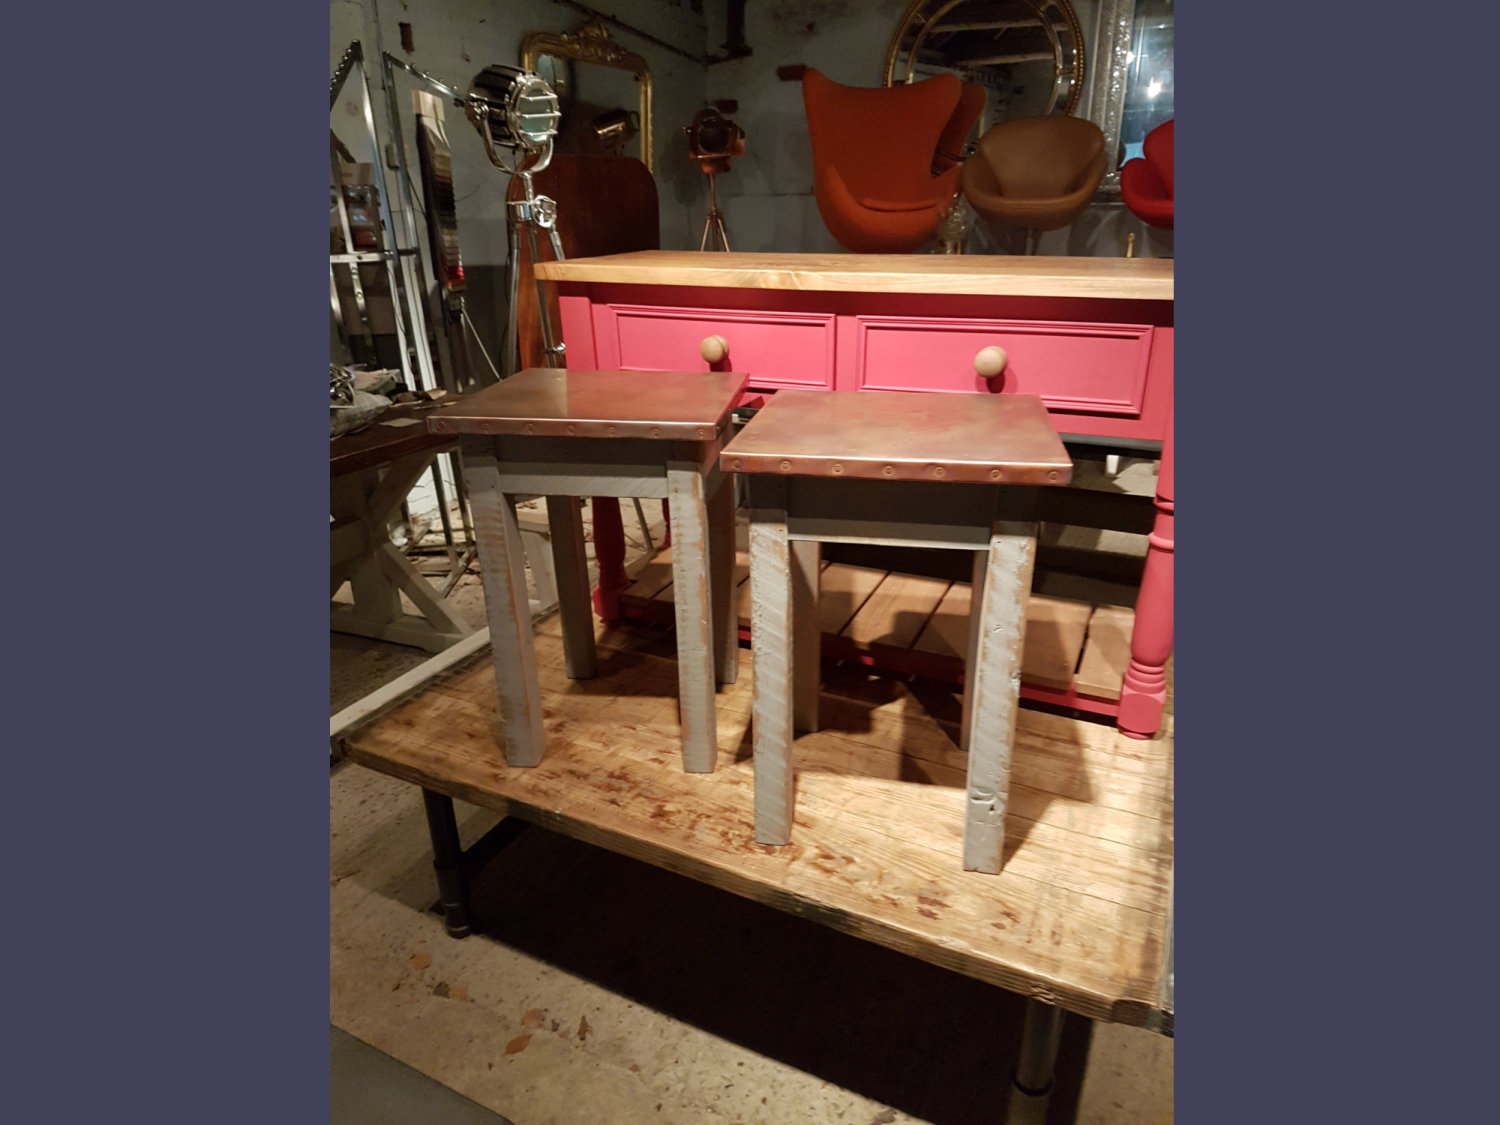 Bespoke Handmade Lamp Table - Any Design or Specification